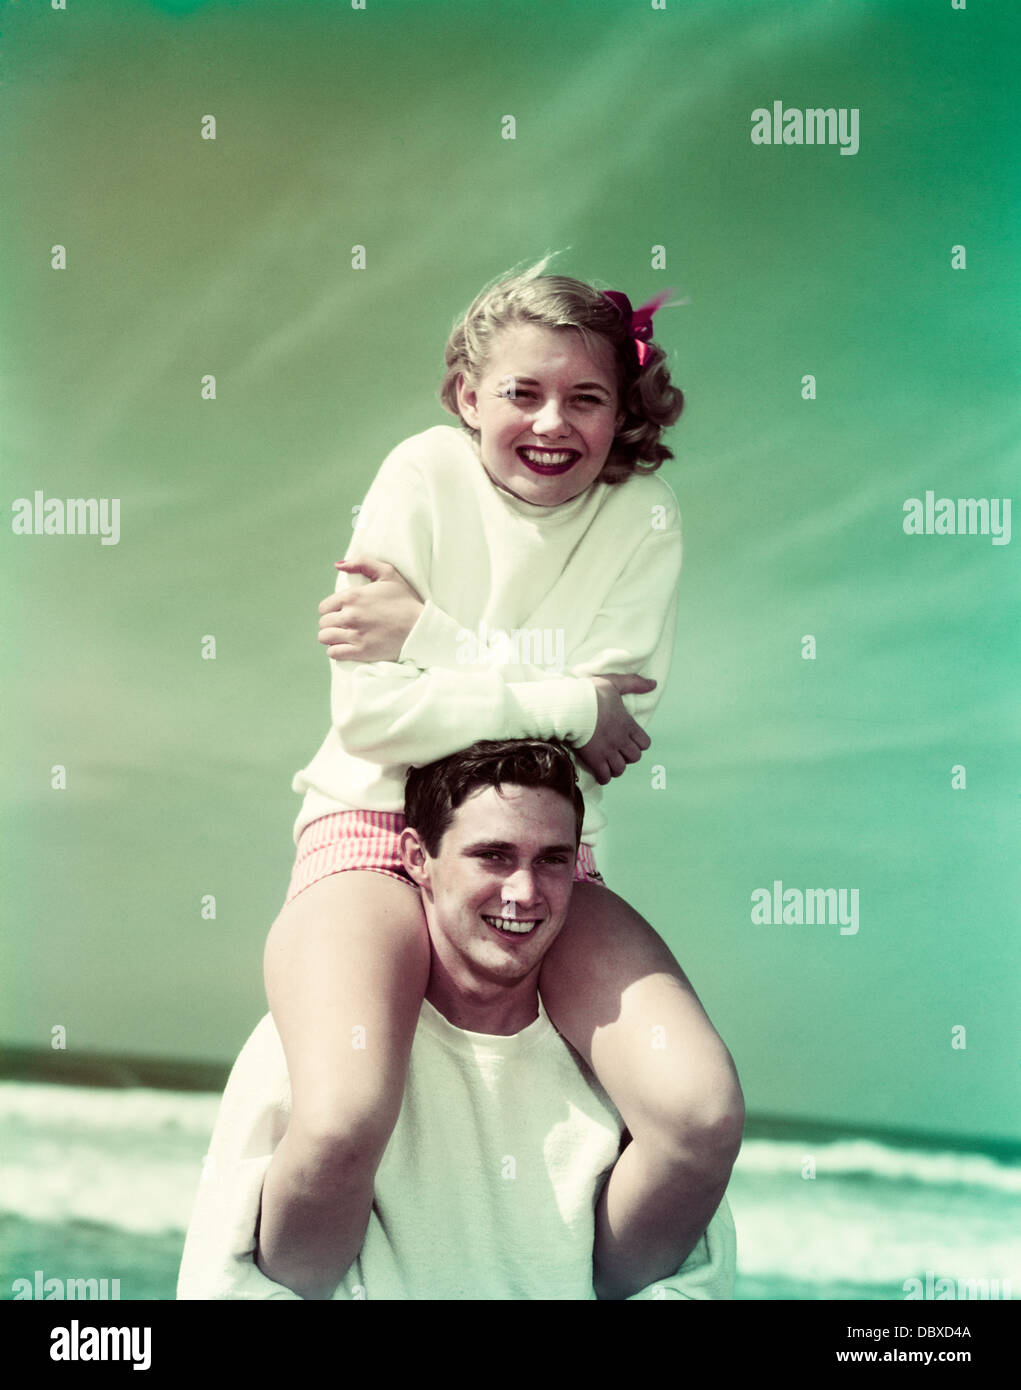 Années 1940 Années 1950 SMILING TEEN COUPLE AT BEACH GIRL SITTING ON BOYS ÉPAULES LOOKING AT CAMERA Photo Stock